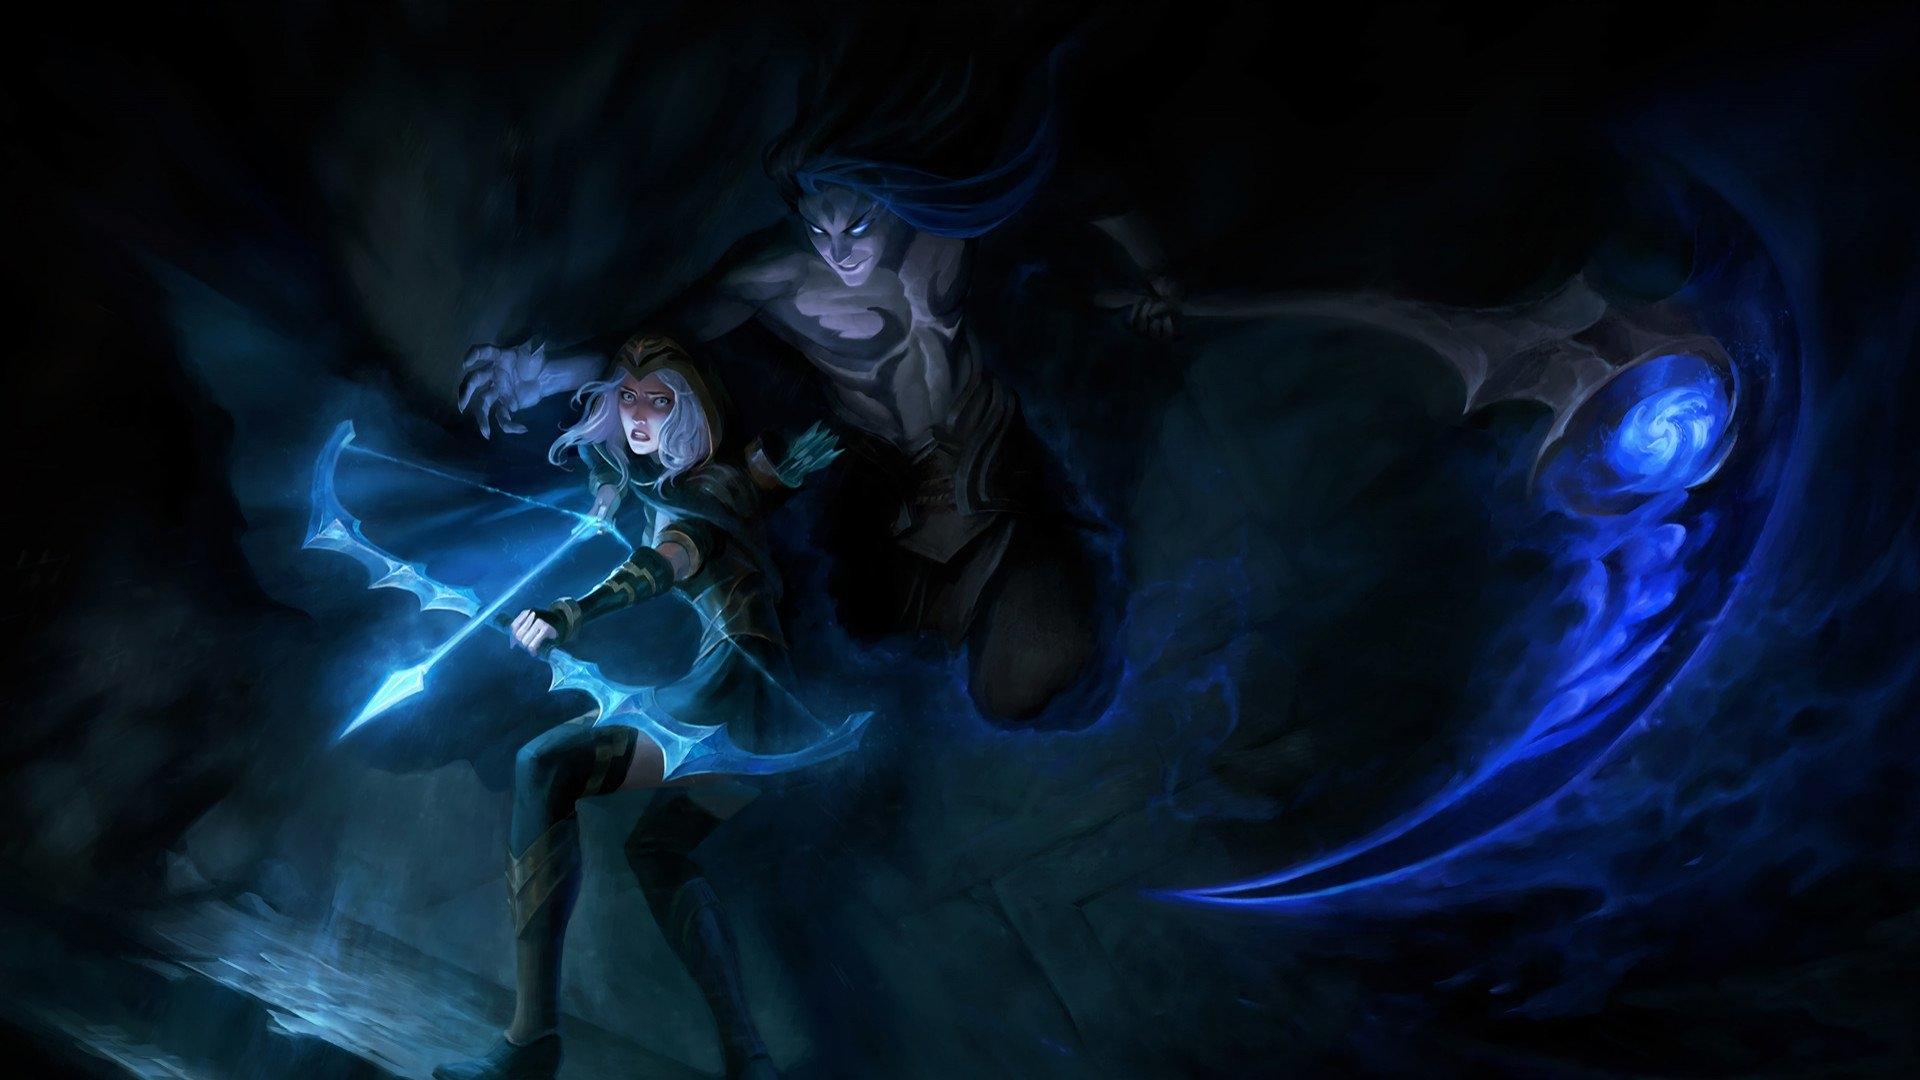 Kayn And Ashe League Of Legends Wallpaper Hd Games 4k